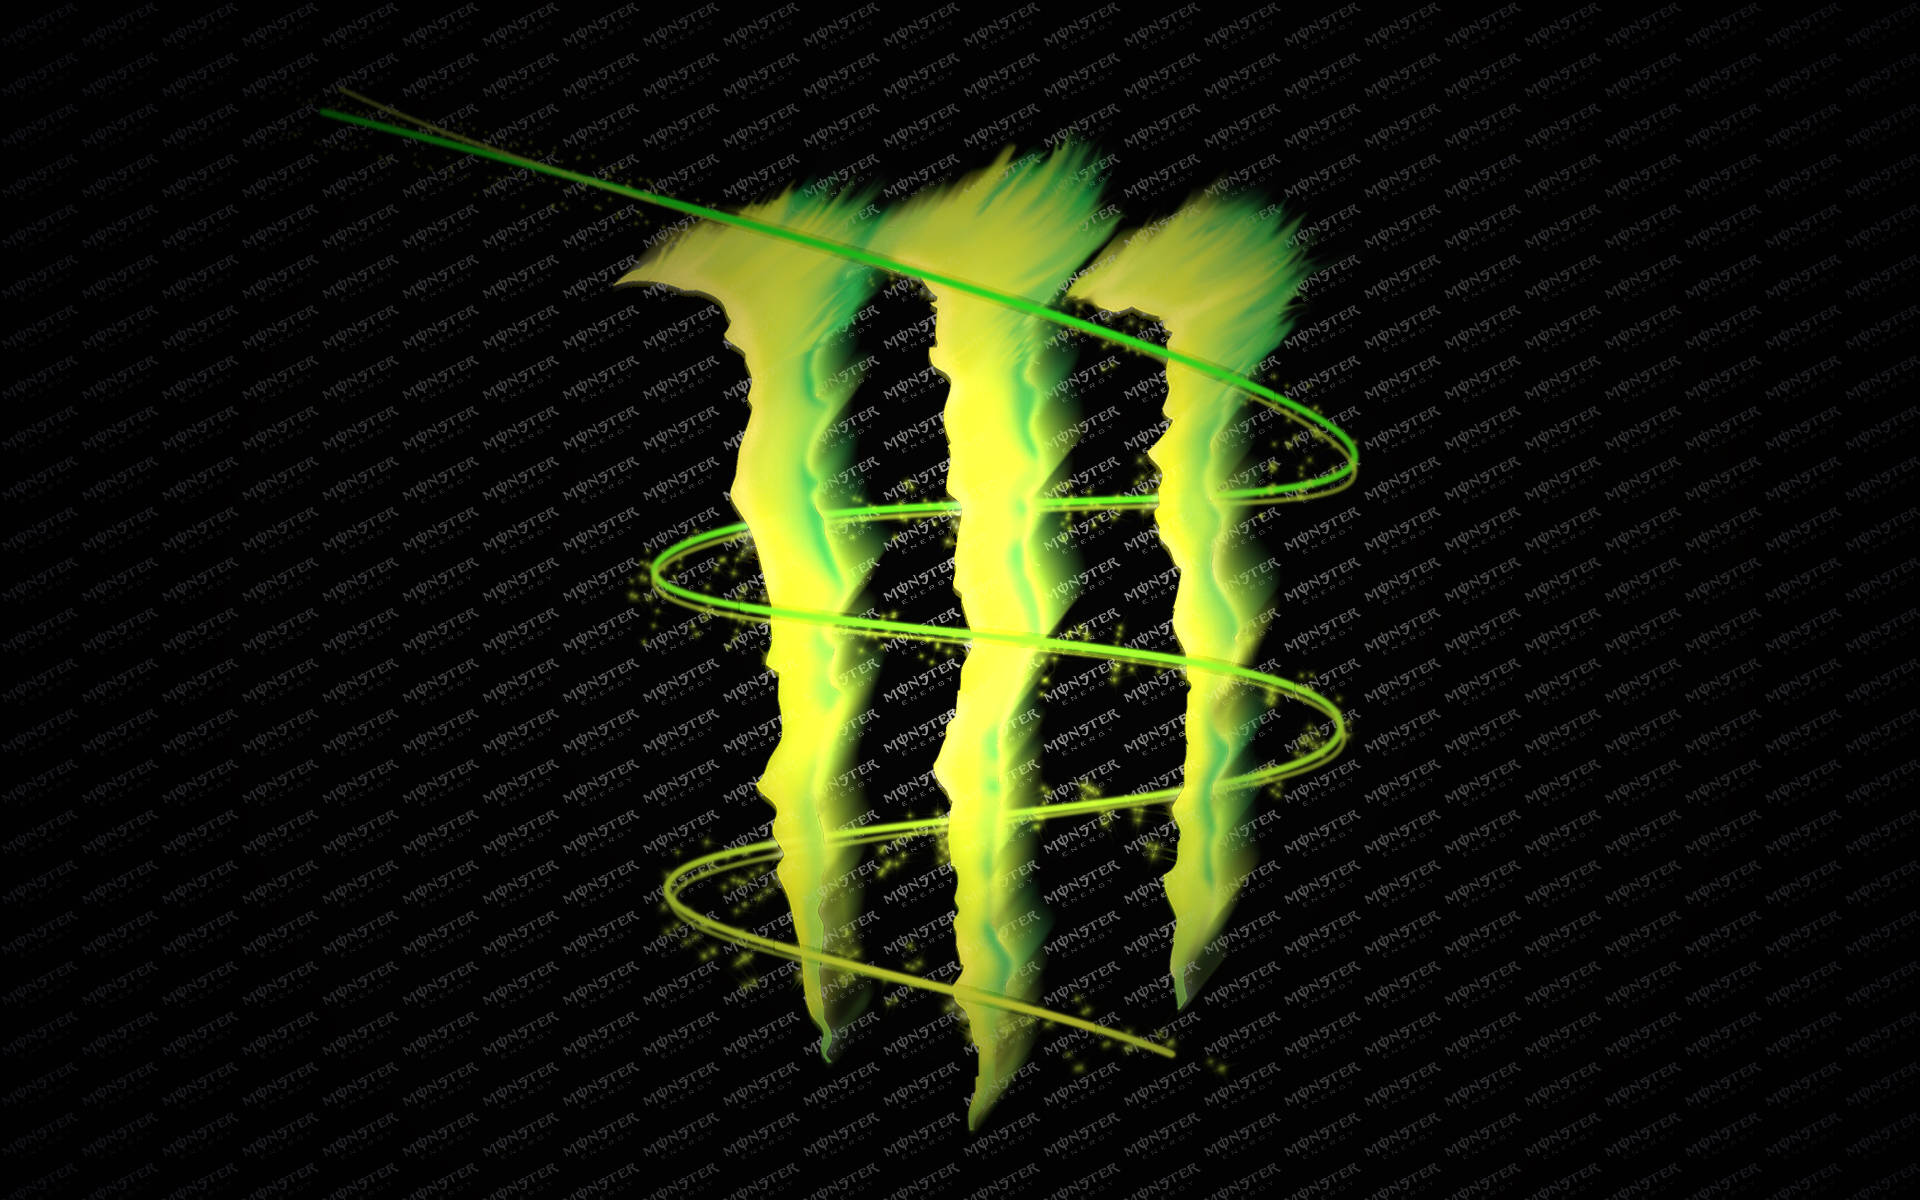 monster energy Monster Energy Logo HD Wallpaper Widescreen For PC 1920x1200